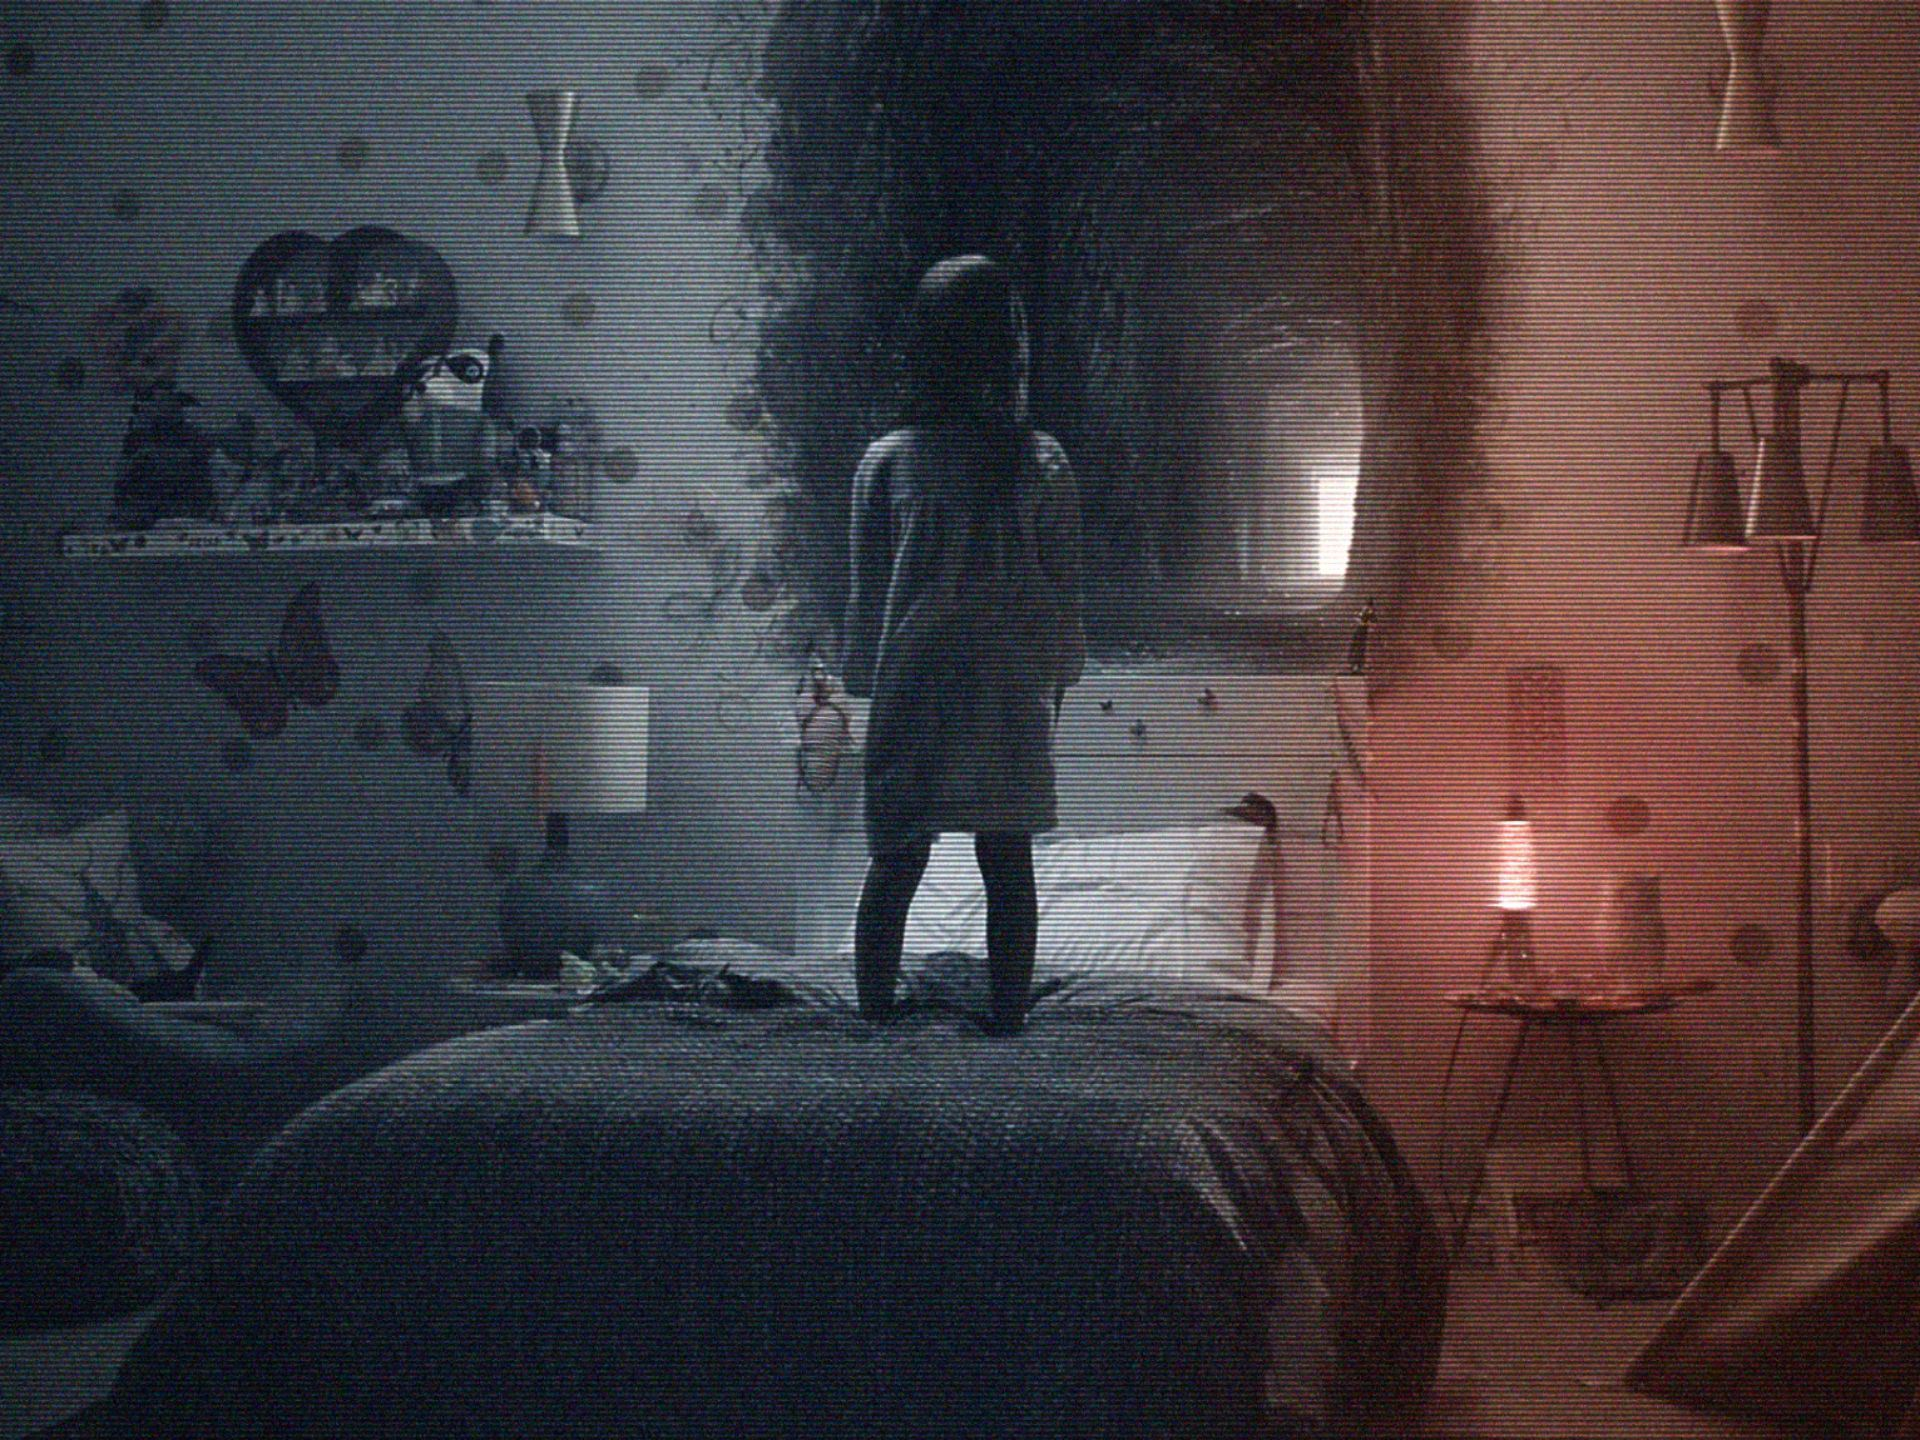 Paranormal Activity: The Ghost Dimension (2015) movie still